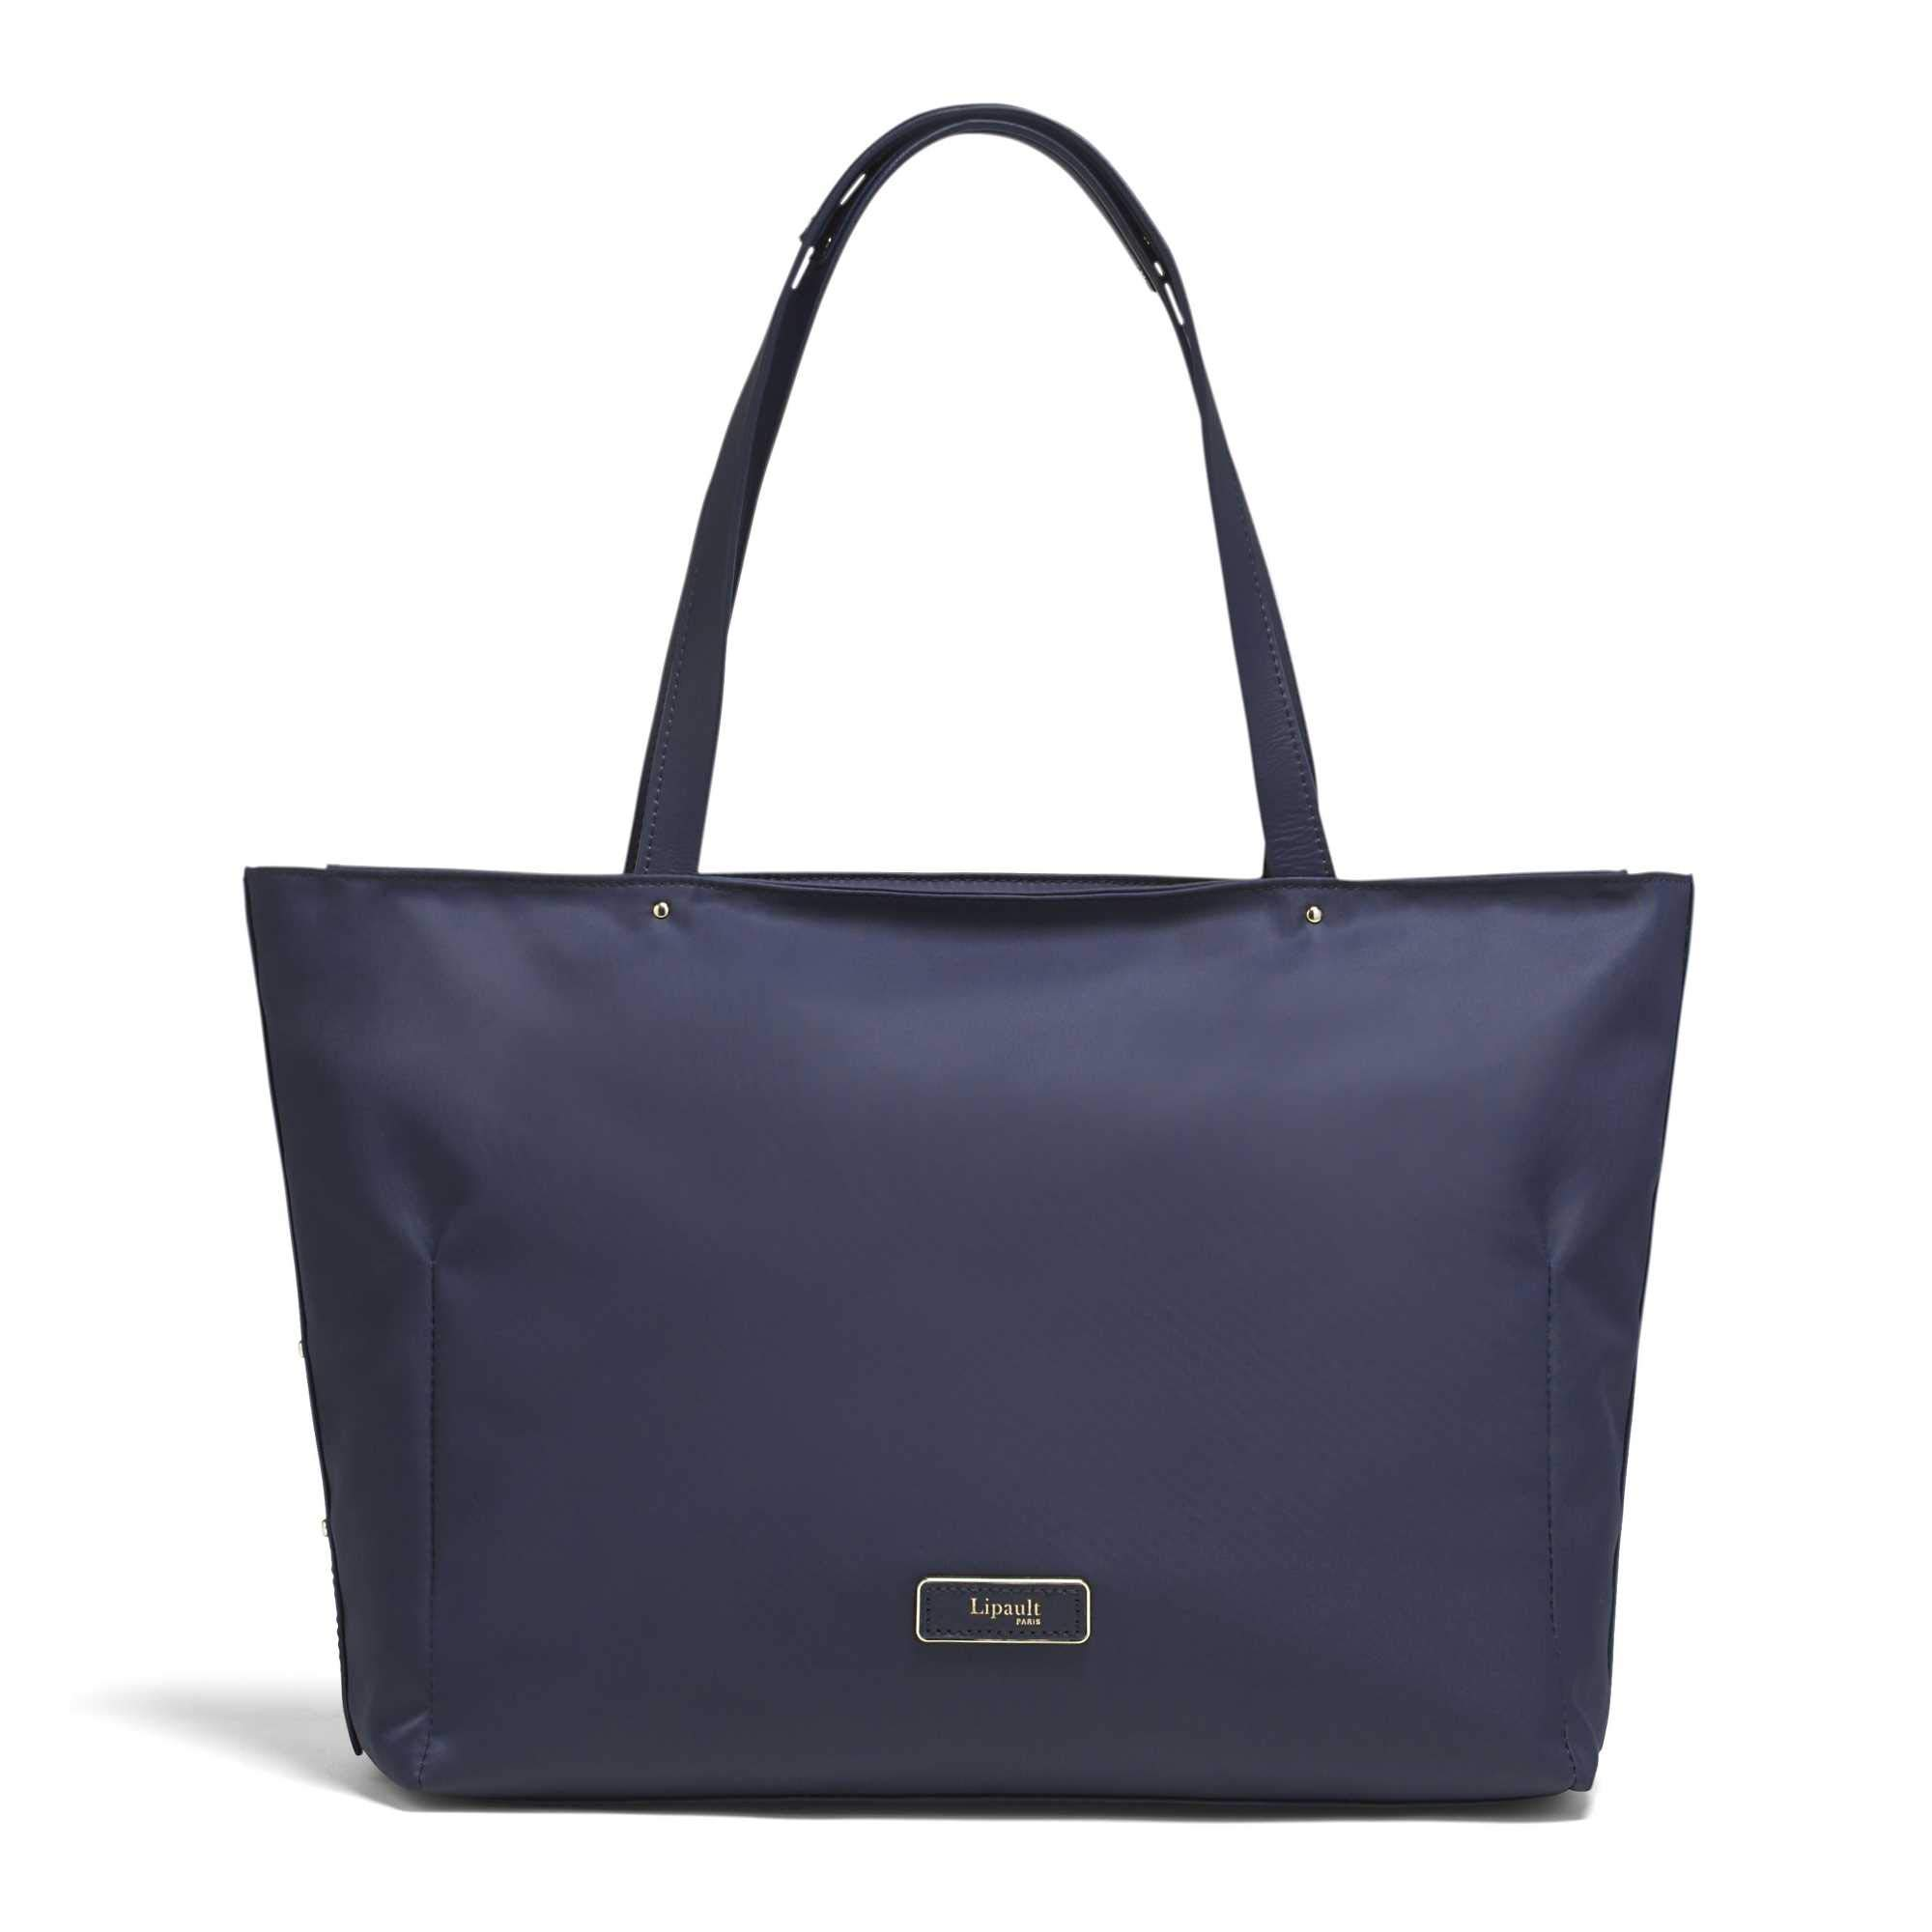 Lipault - Business Avenue Laptop Tote Bag - Top Handle Shoulder Handbag For Women - Night Blue, Medium by Lipault (Image #1)